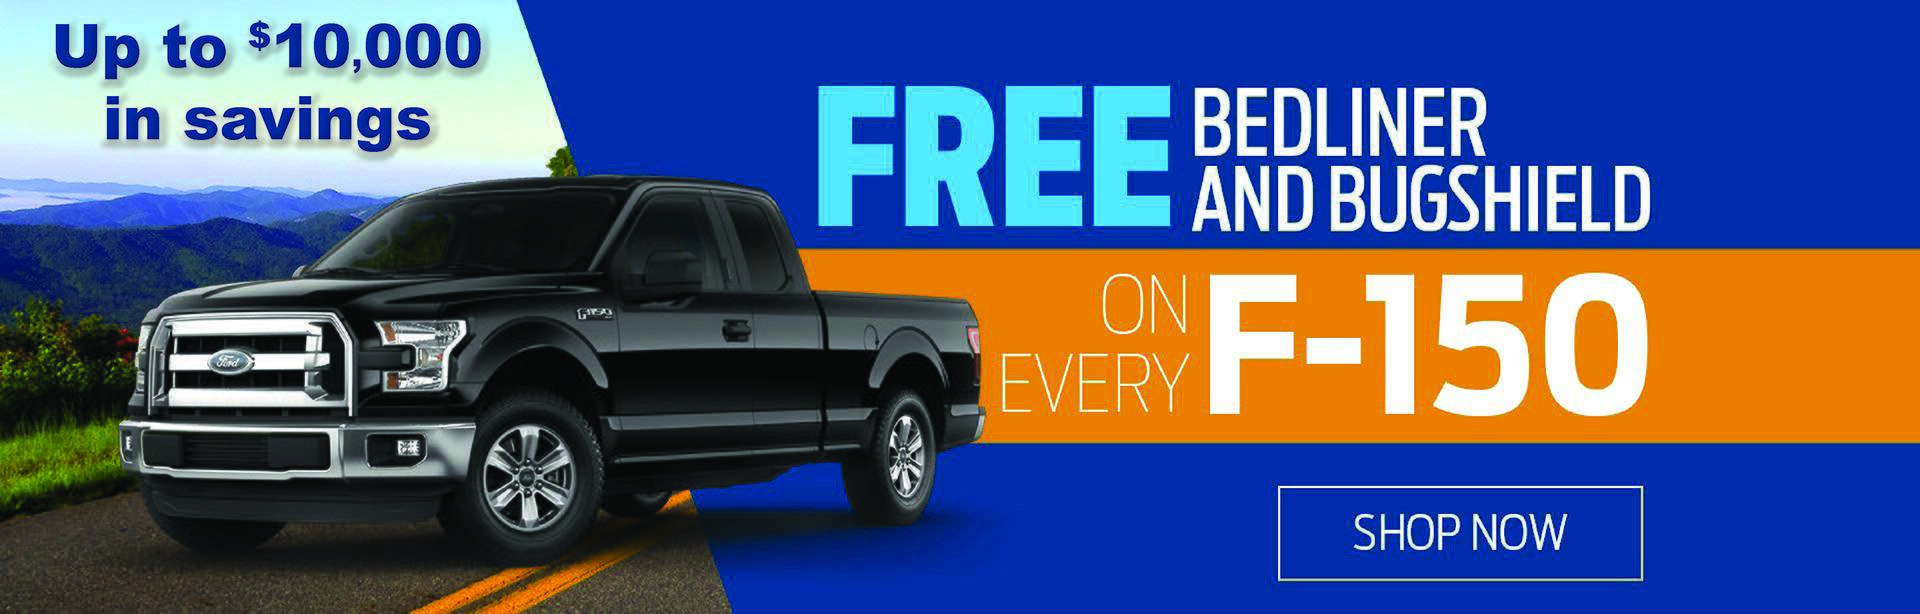 Free Bedliner and Bug Shield